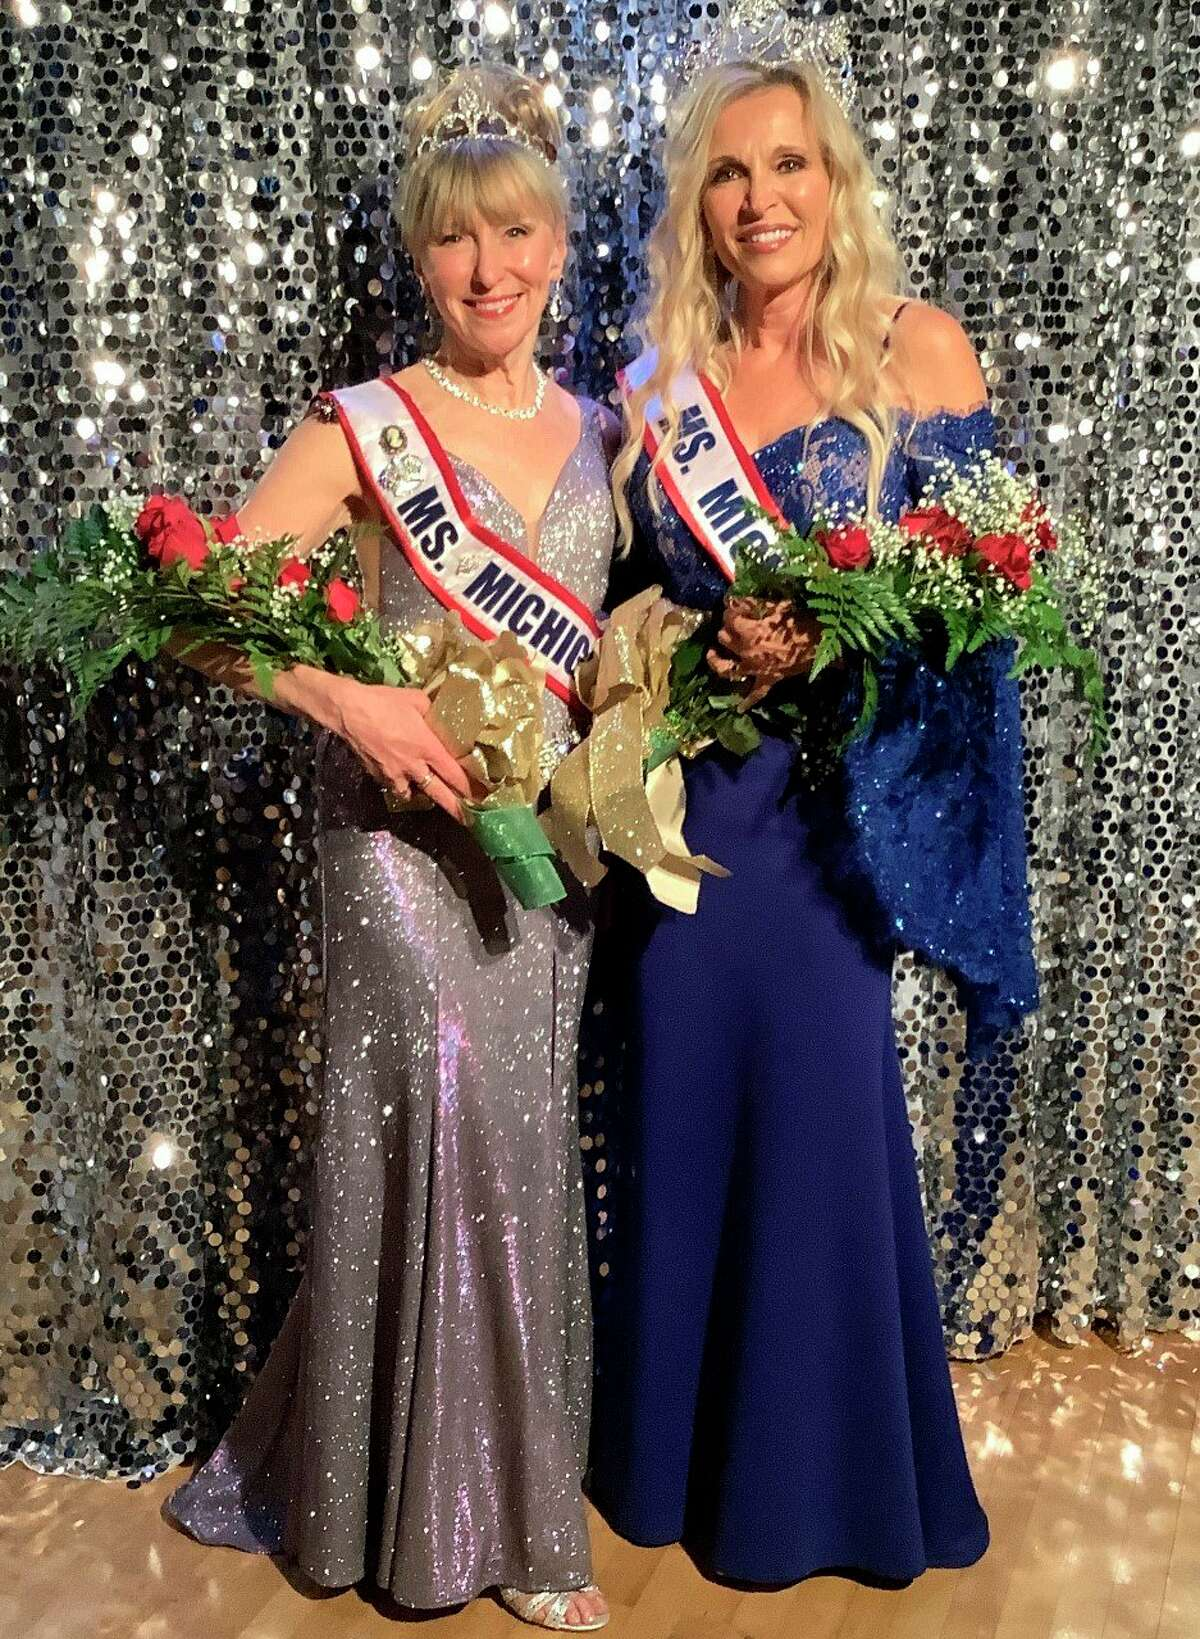 Ms. Senior Michigan 2021, Beth Grothe (right) poses with Ms. Senior Michigan 2019, Cathy Roe, following the announcement of the winner of the pageant. The contest was cancelled in 2020 due to the COVID-19 pandemic. (Photo courtesy of Cathy Roe and Beth Grothe)